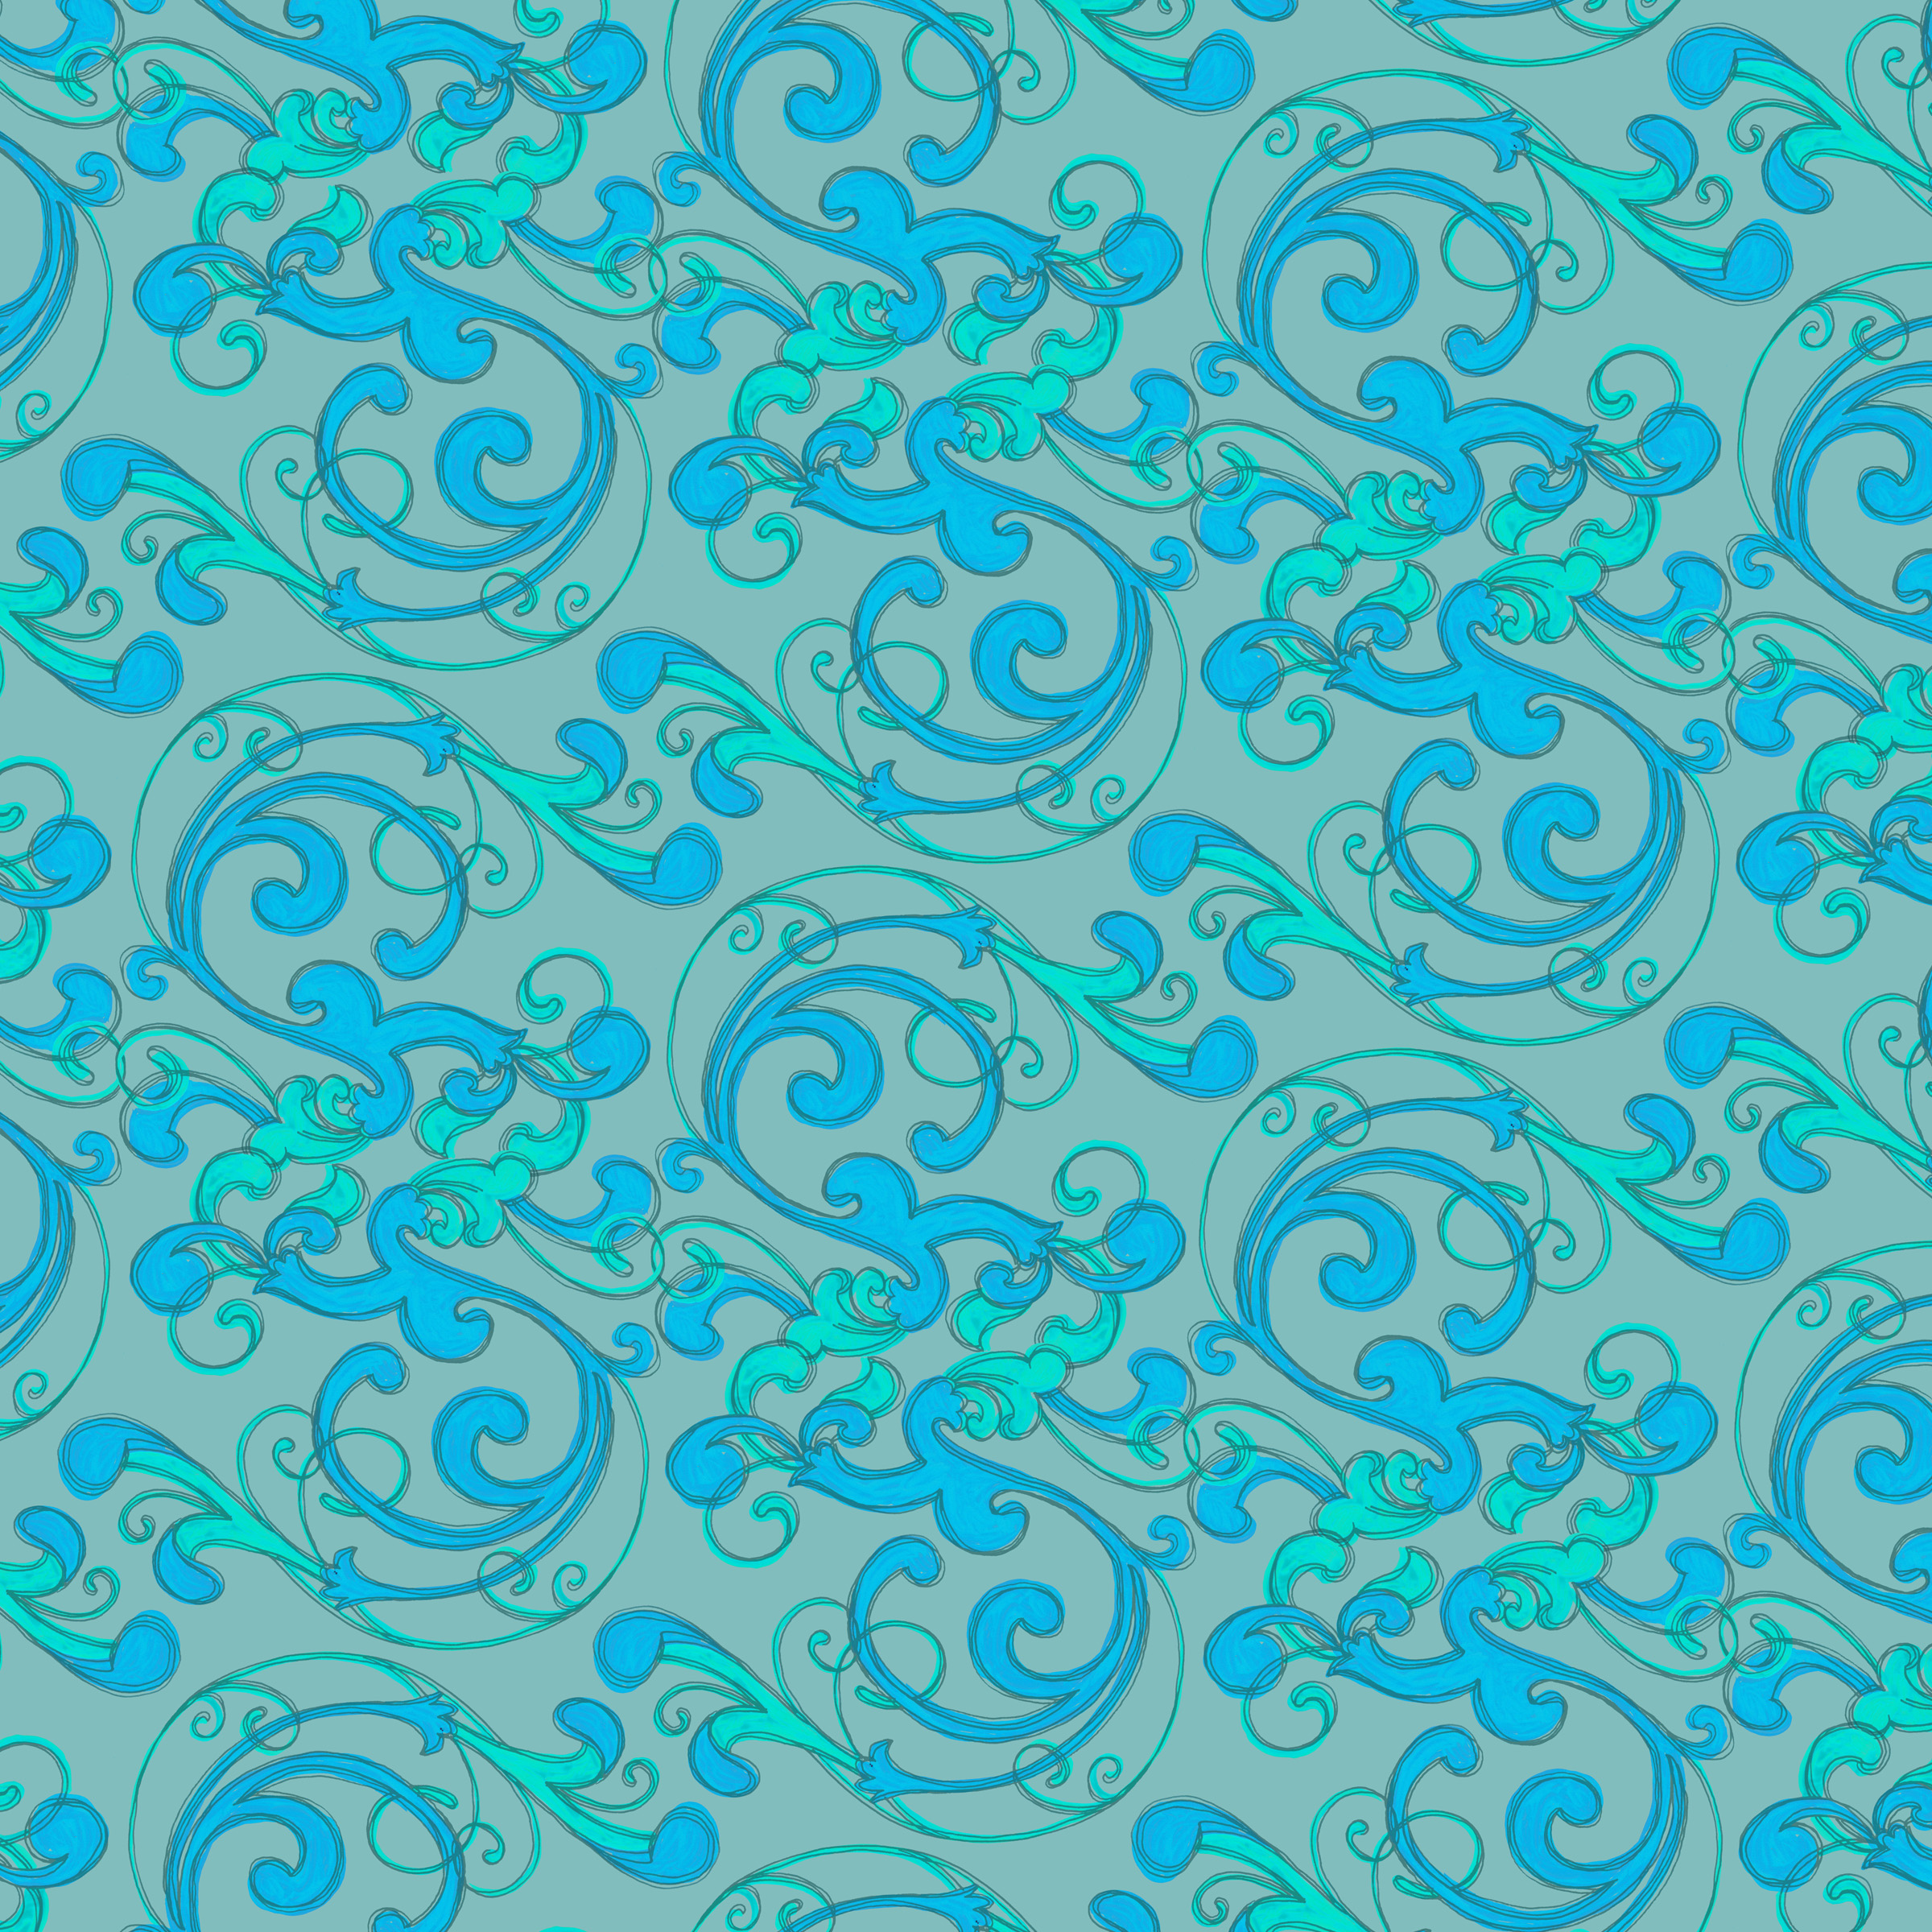 Sea Swirls